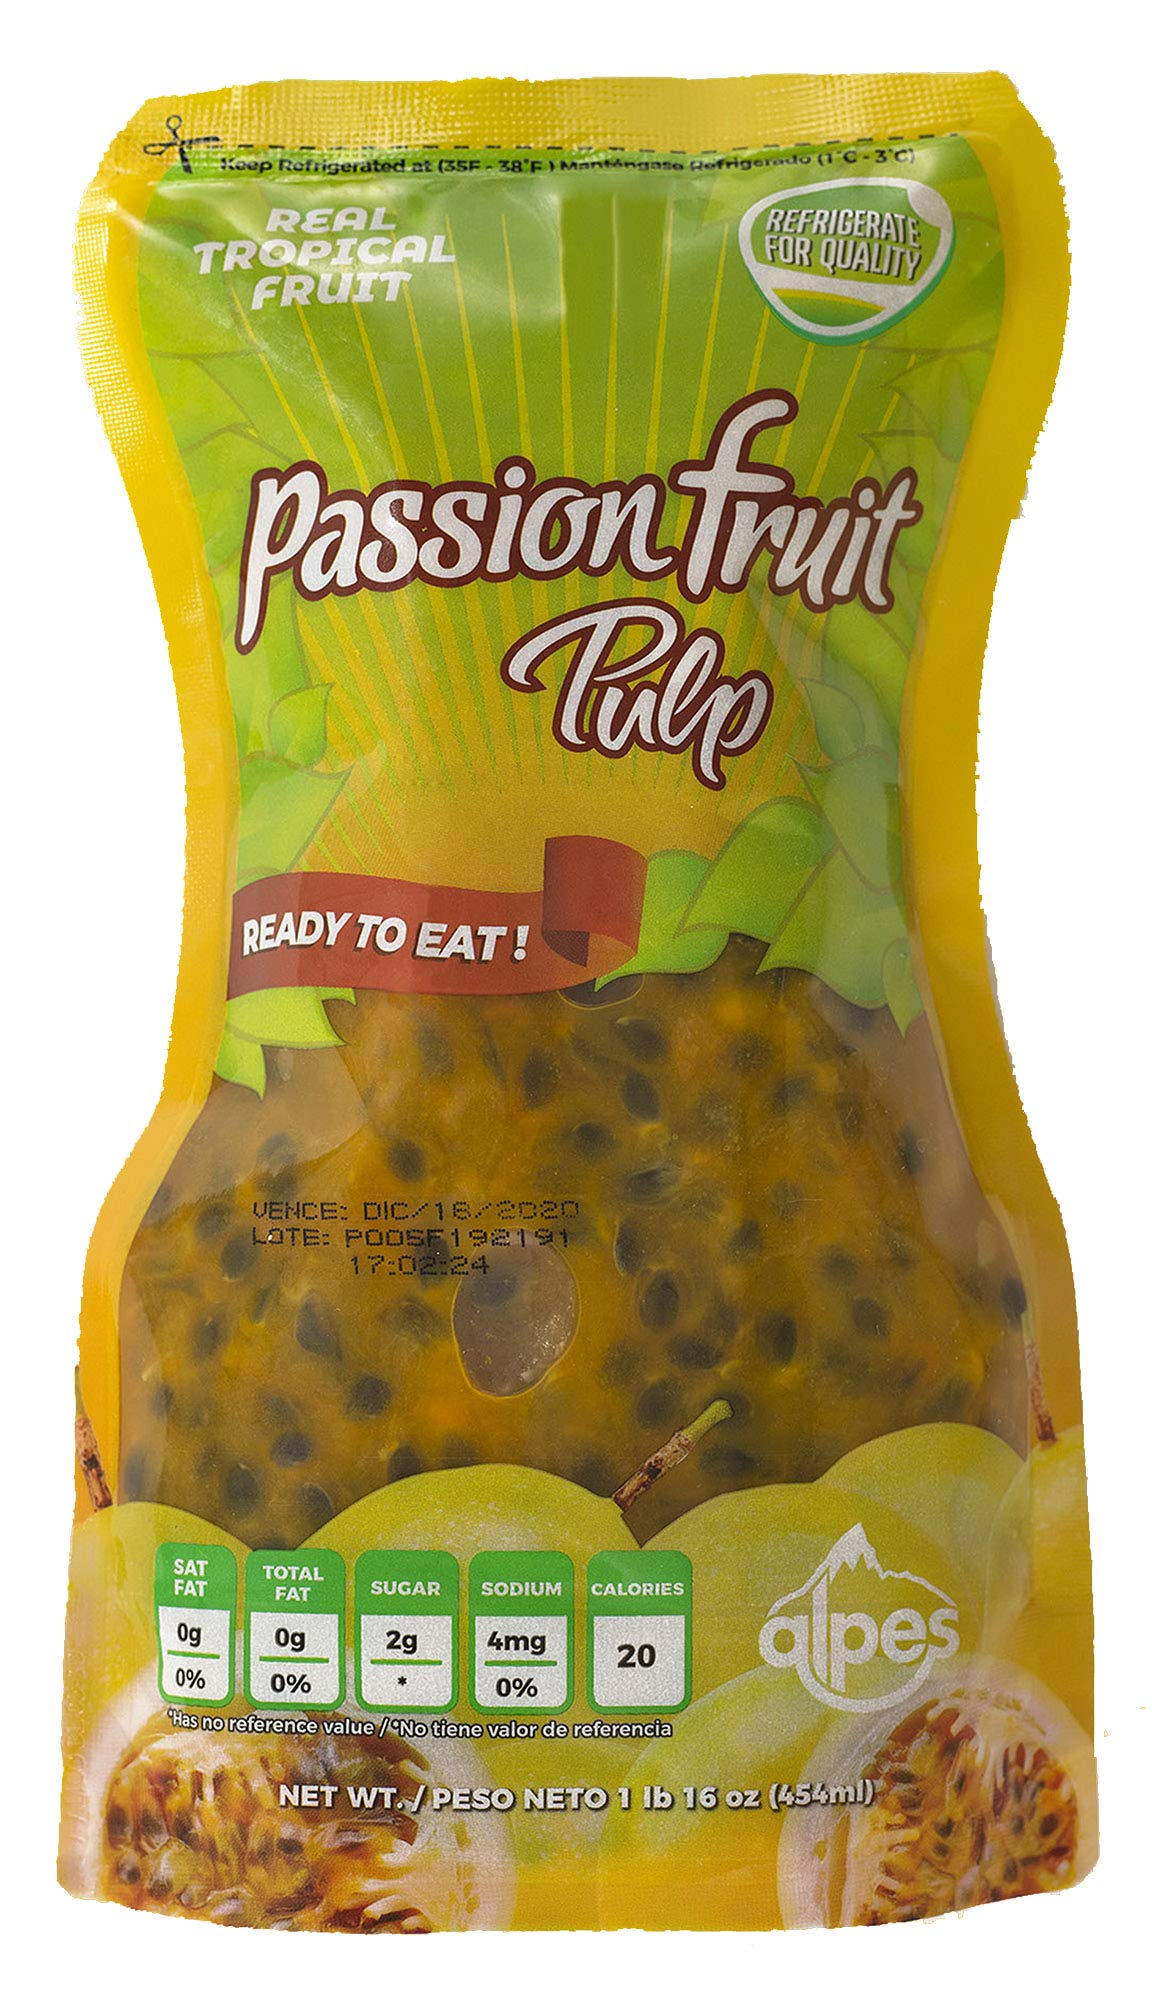 Alpes Passion Fruit Pulp with Real Tropical Fruit, Ready to Eat, 16 Oz